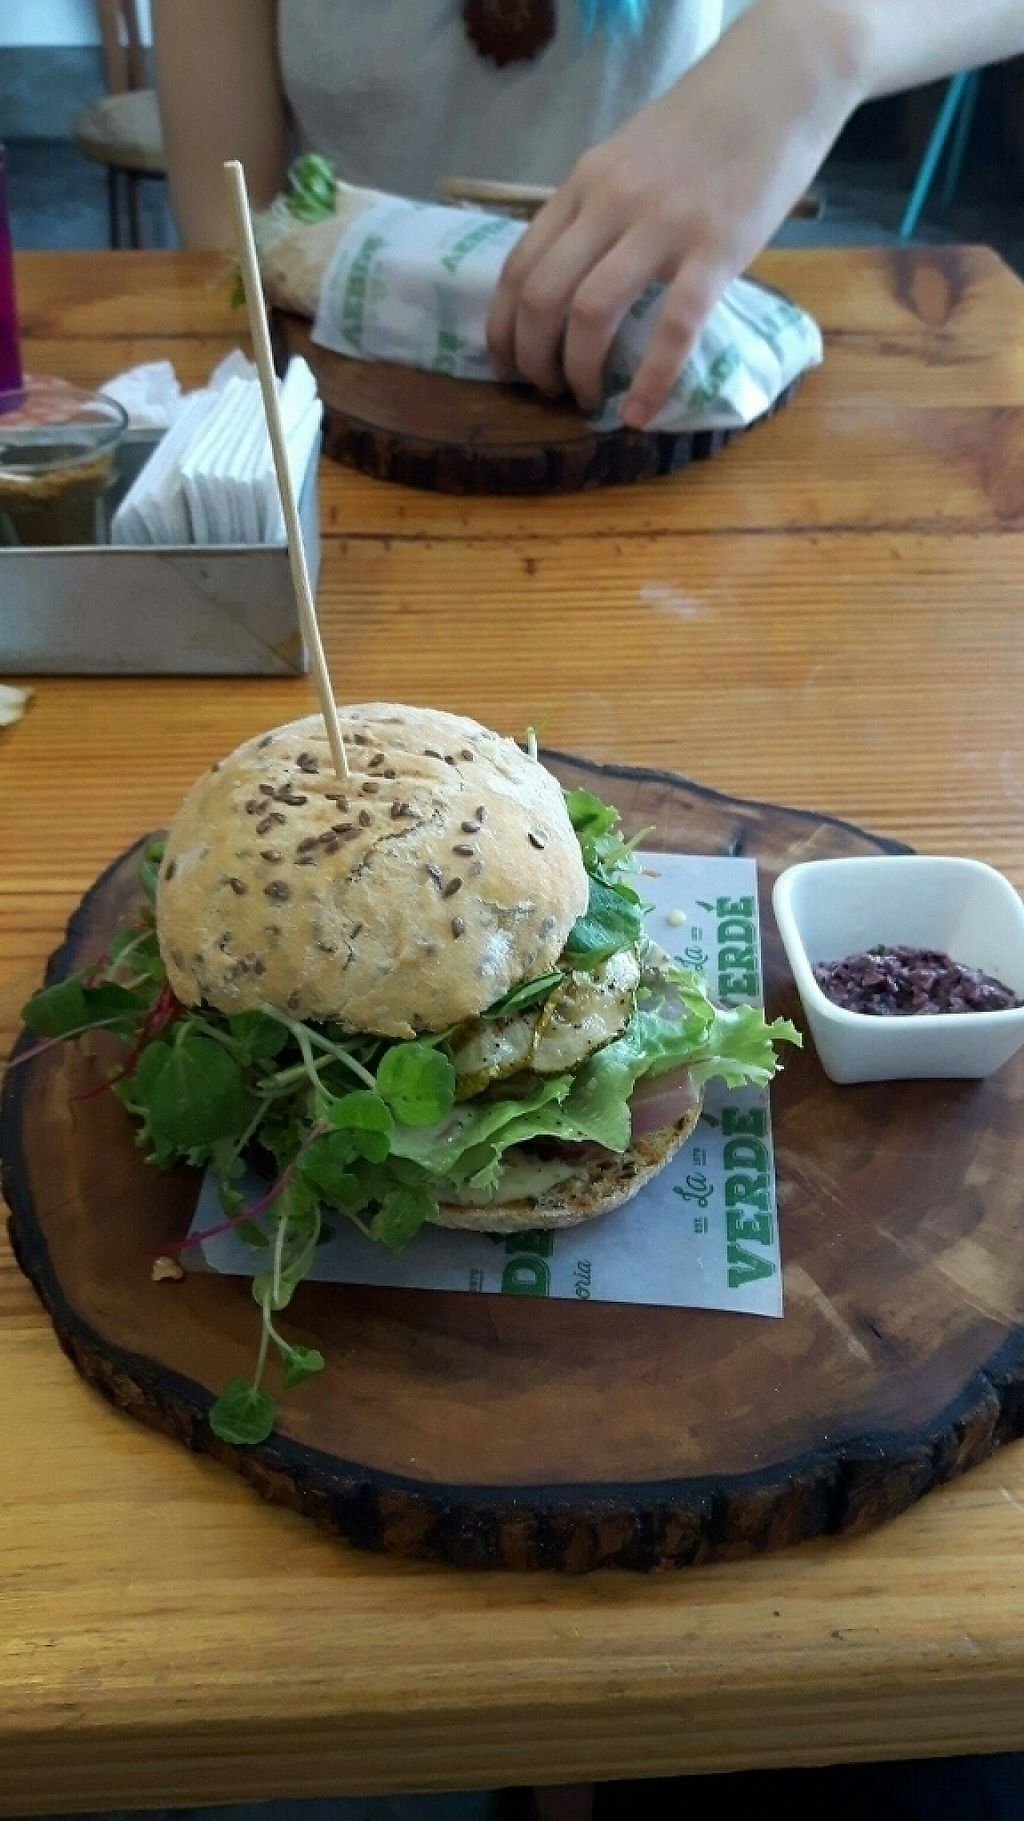 """Photo of La Verde  by <a href=""""/members/profile/dustydope"""">dustydope</a> <br/>burger and grilled veg wrap <br/> May 13, 2017  - <a href='/contact/abuse/image/64792/258487'>Report</a>"""